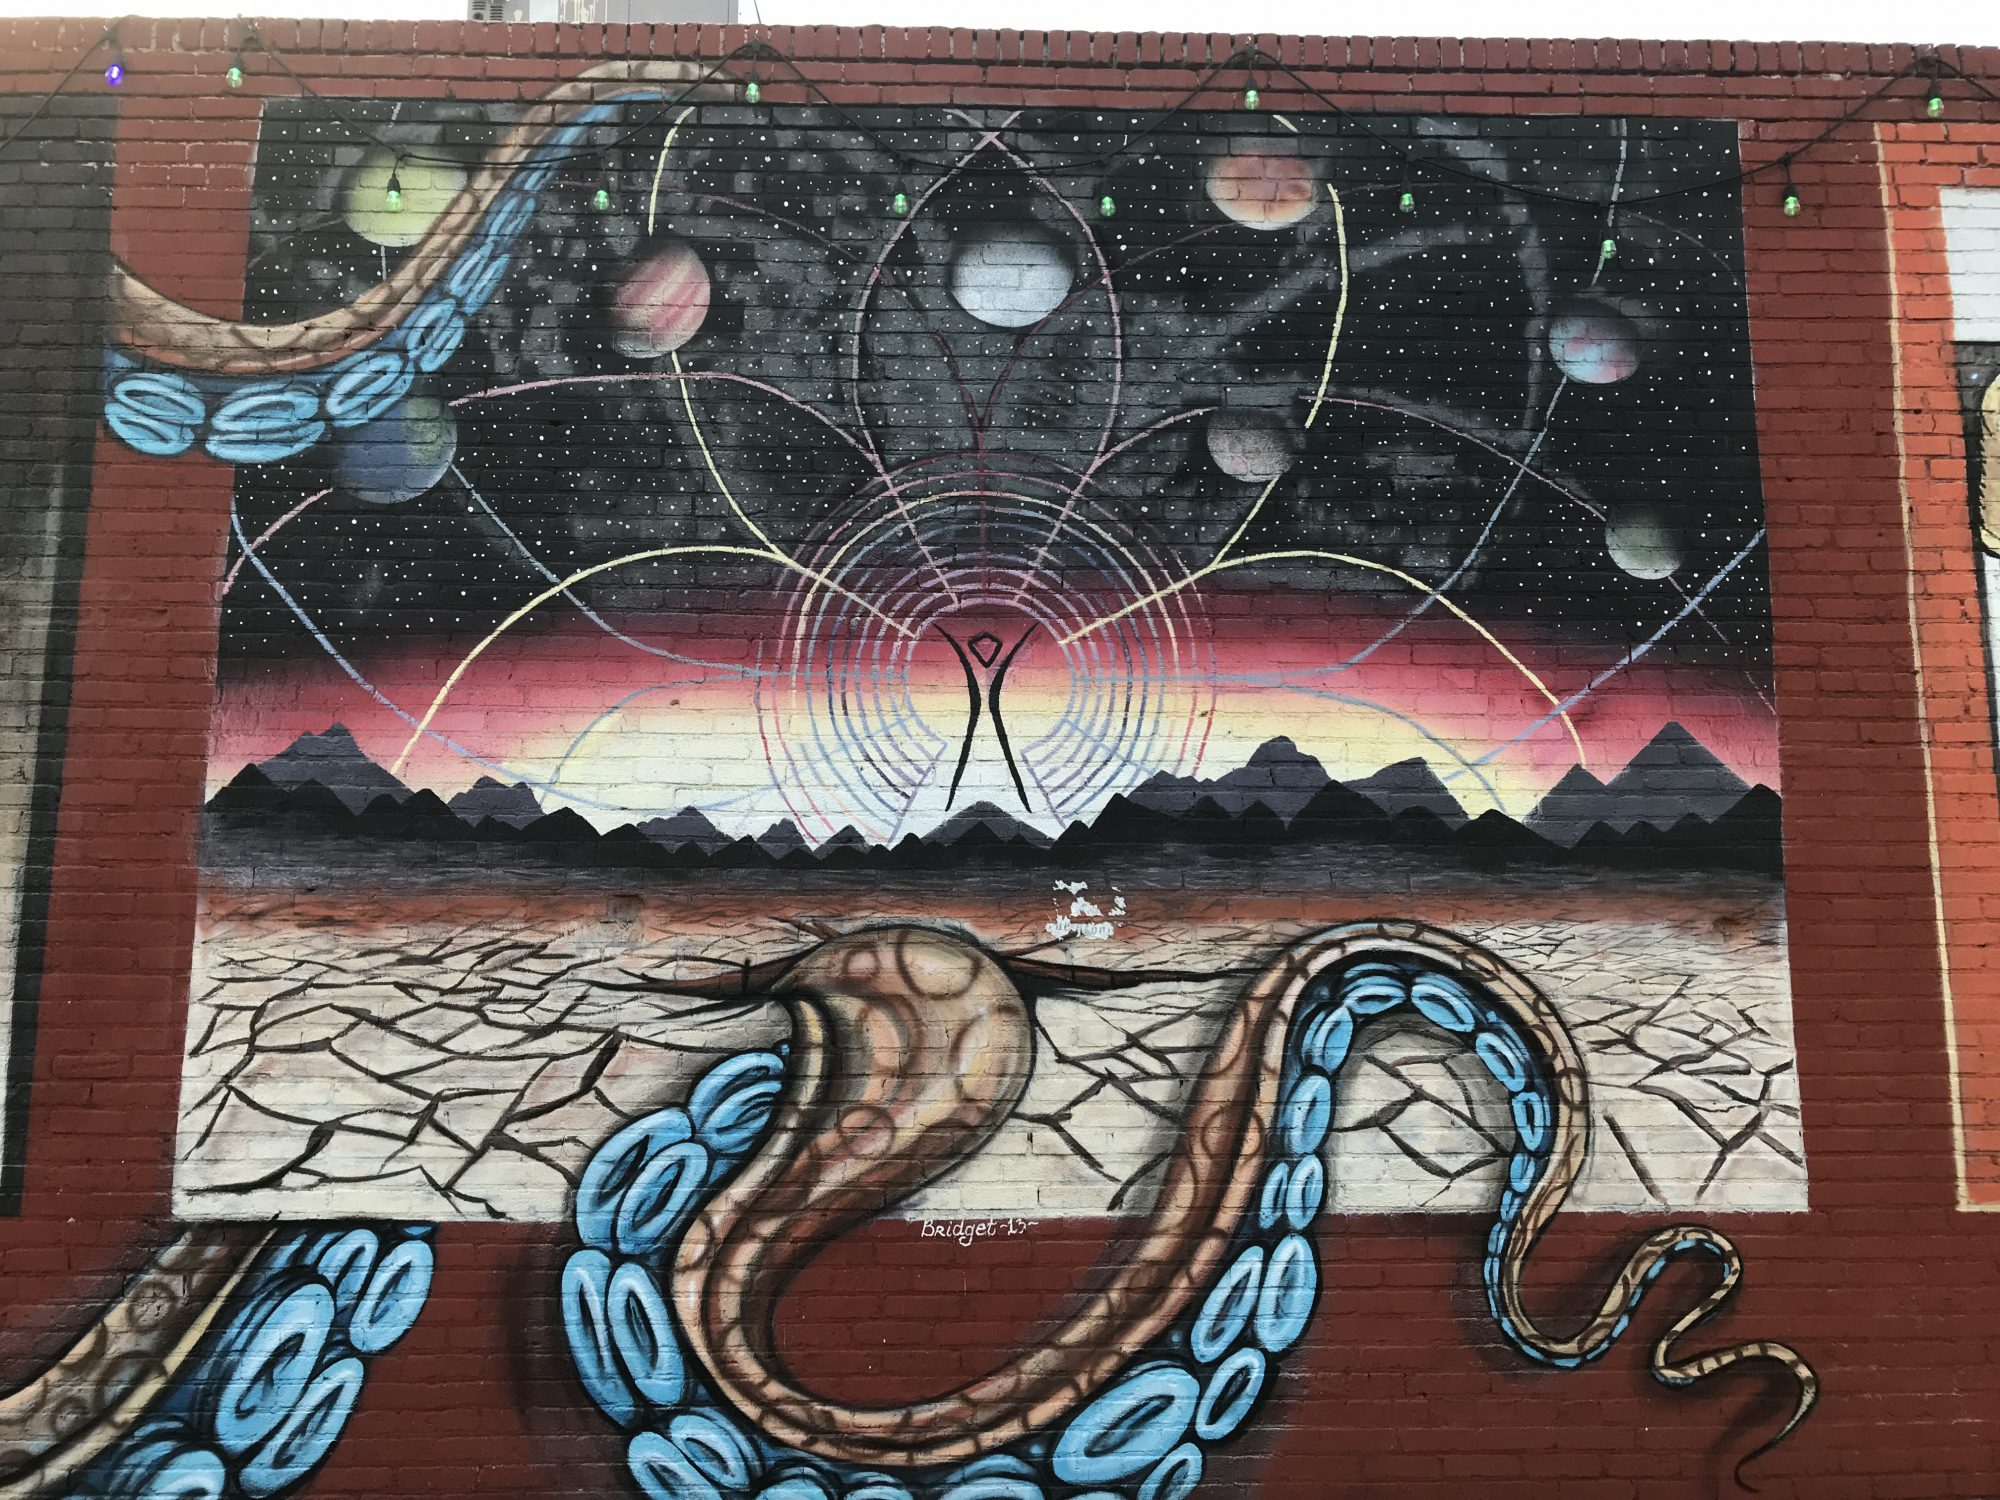 Burning Man Mural